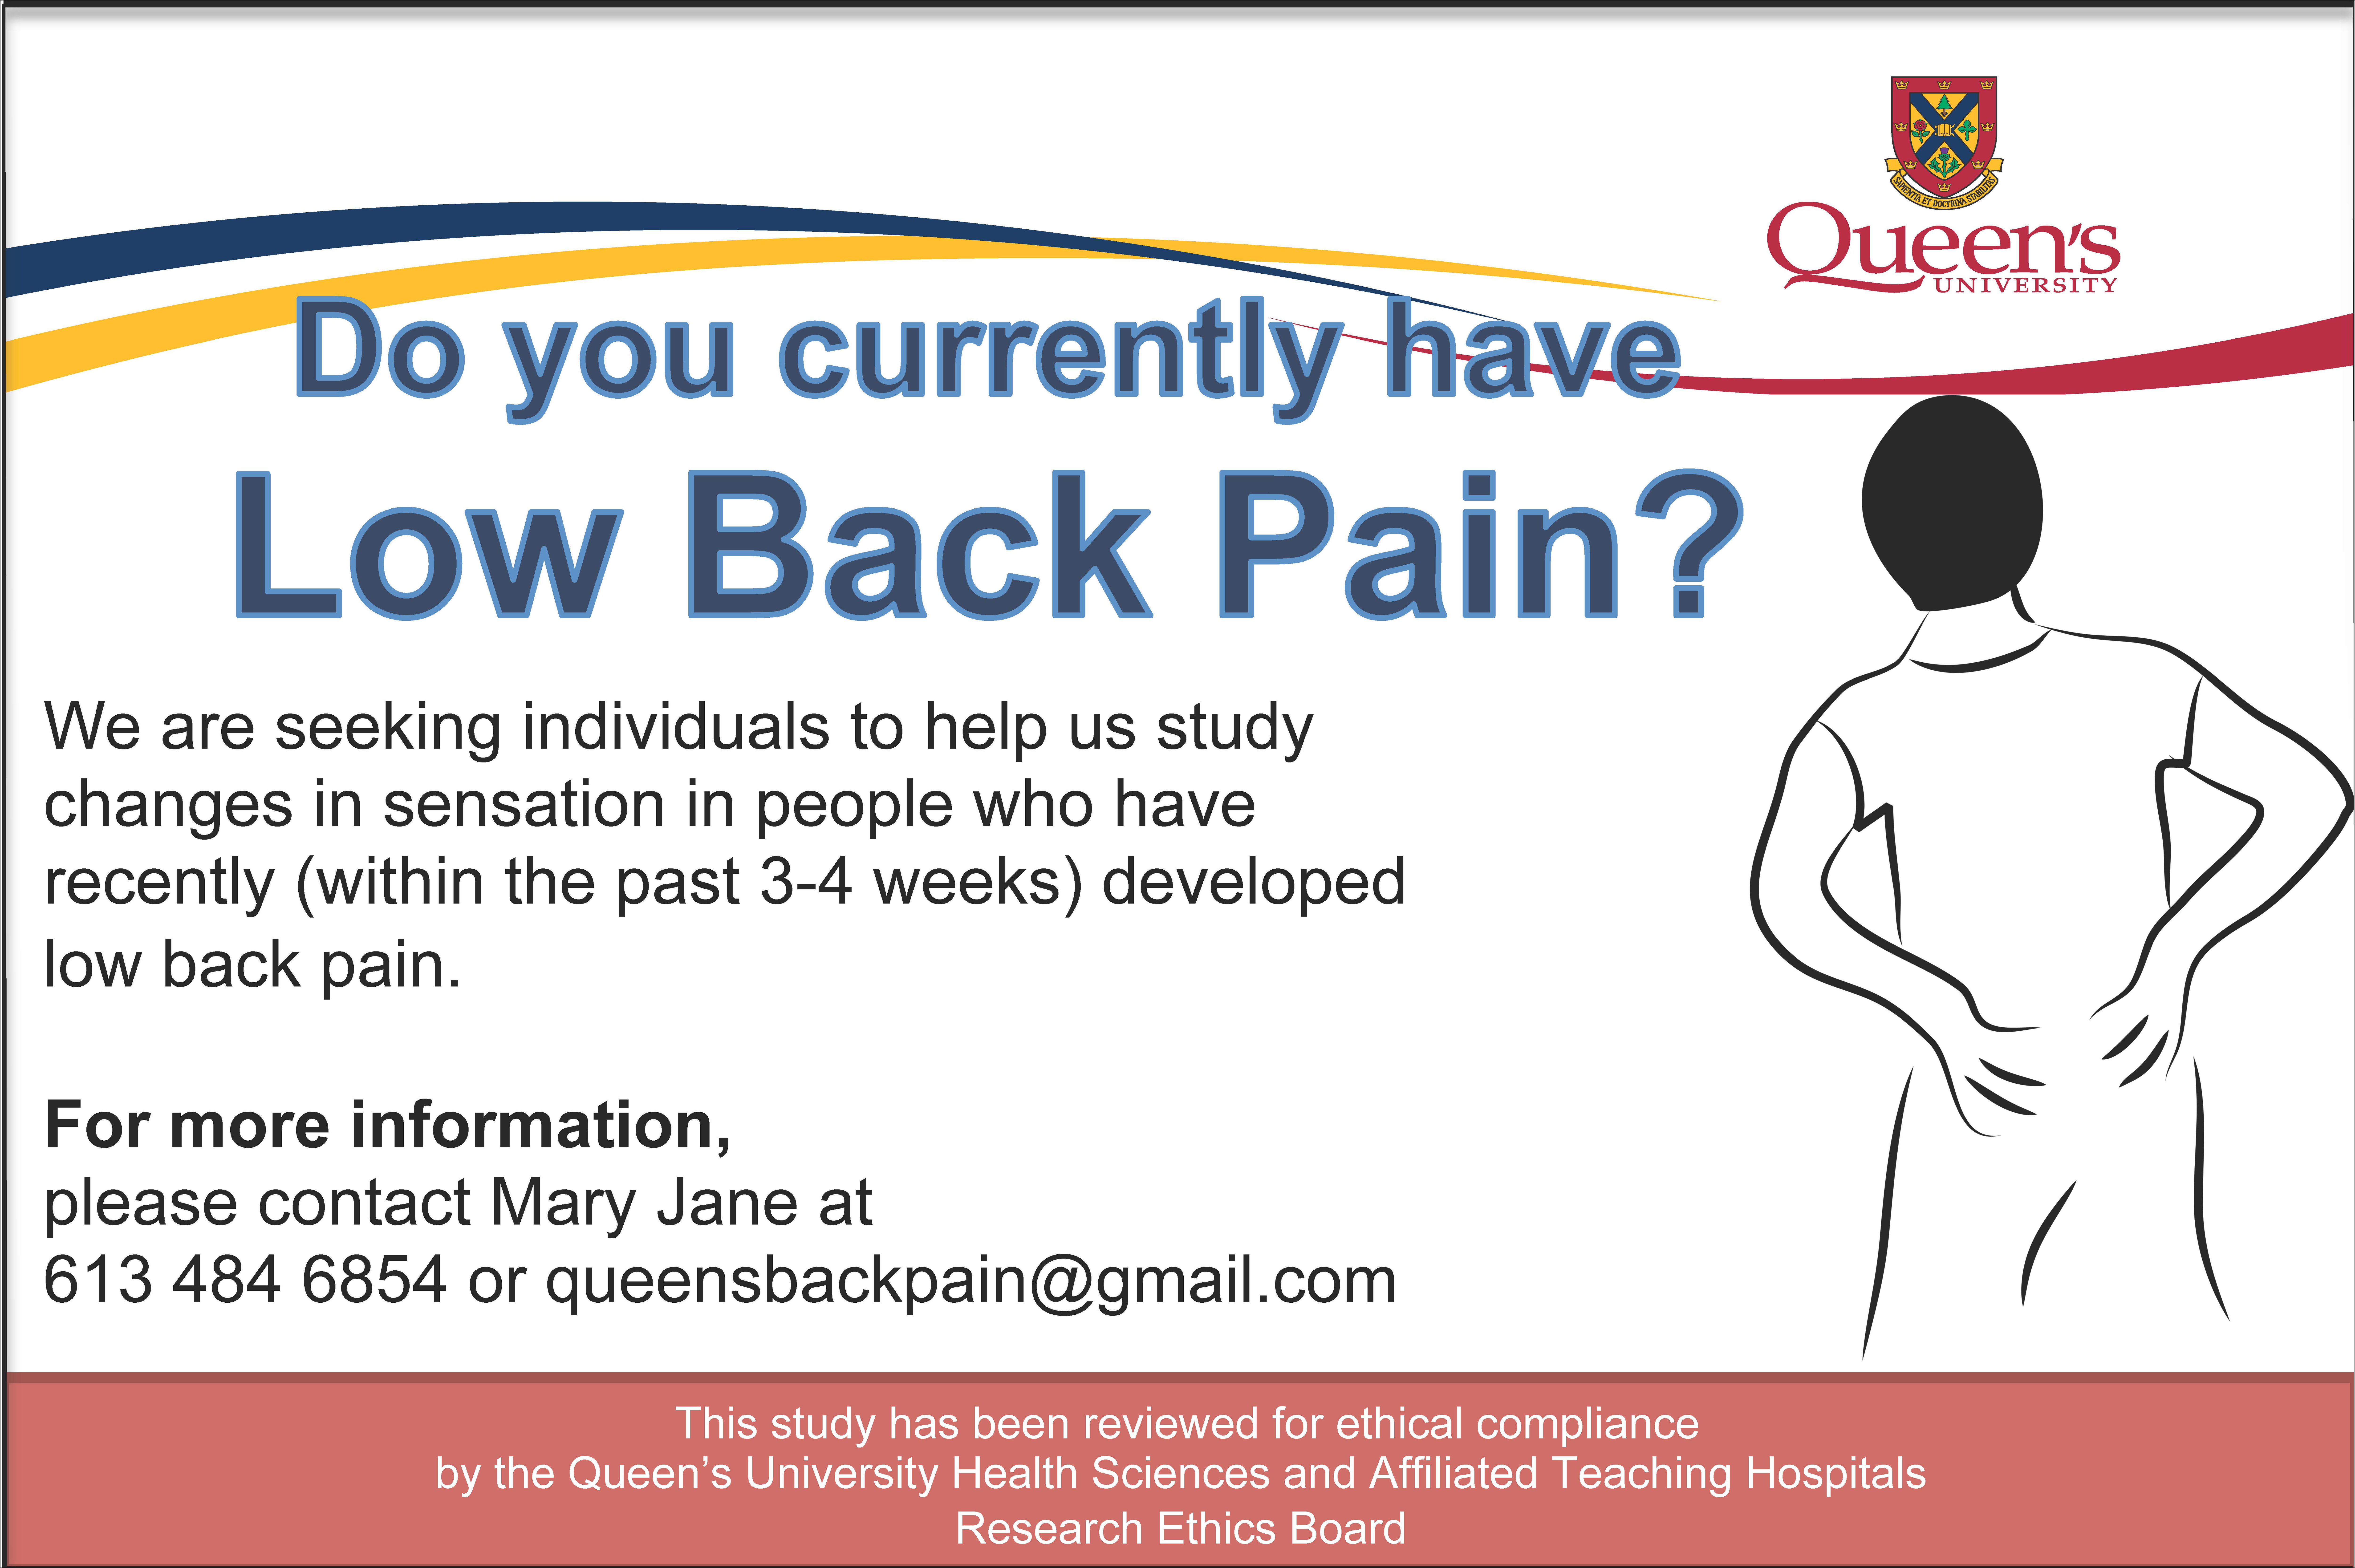 Low Back Pain Study